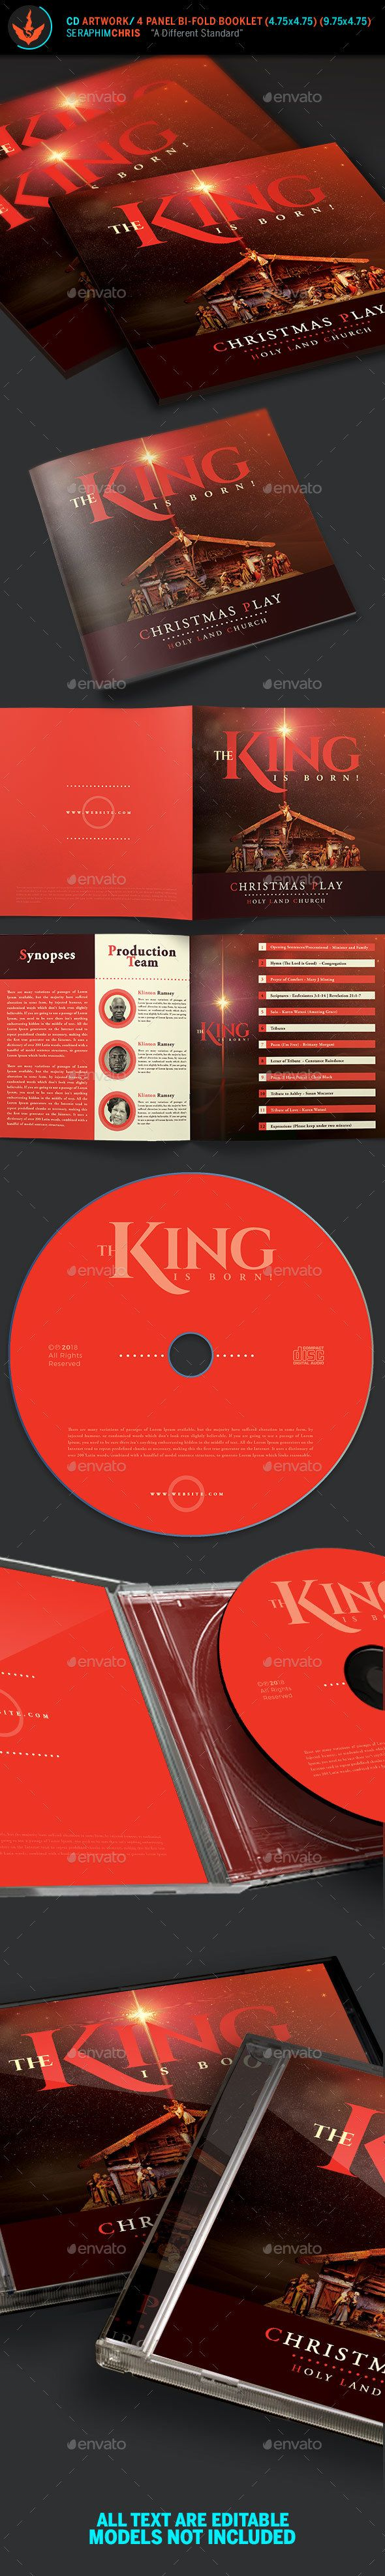 The King Is Born #Christmas CD Artwork Template - #CD & DVD #Artwork Print Templates